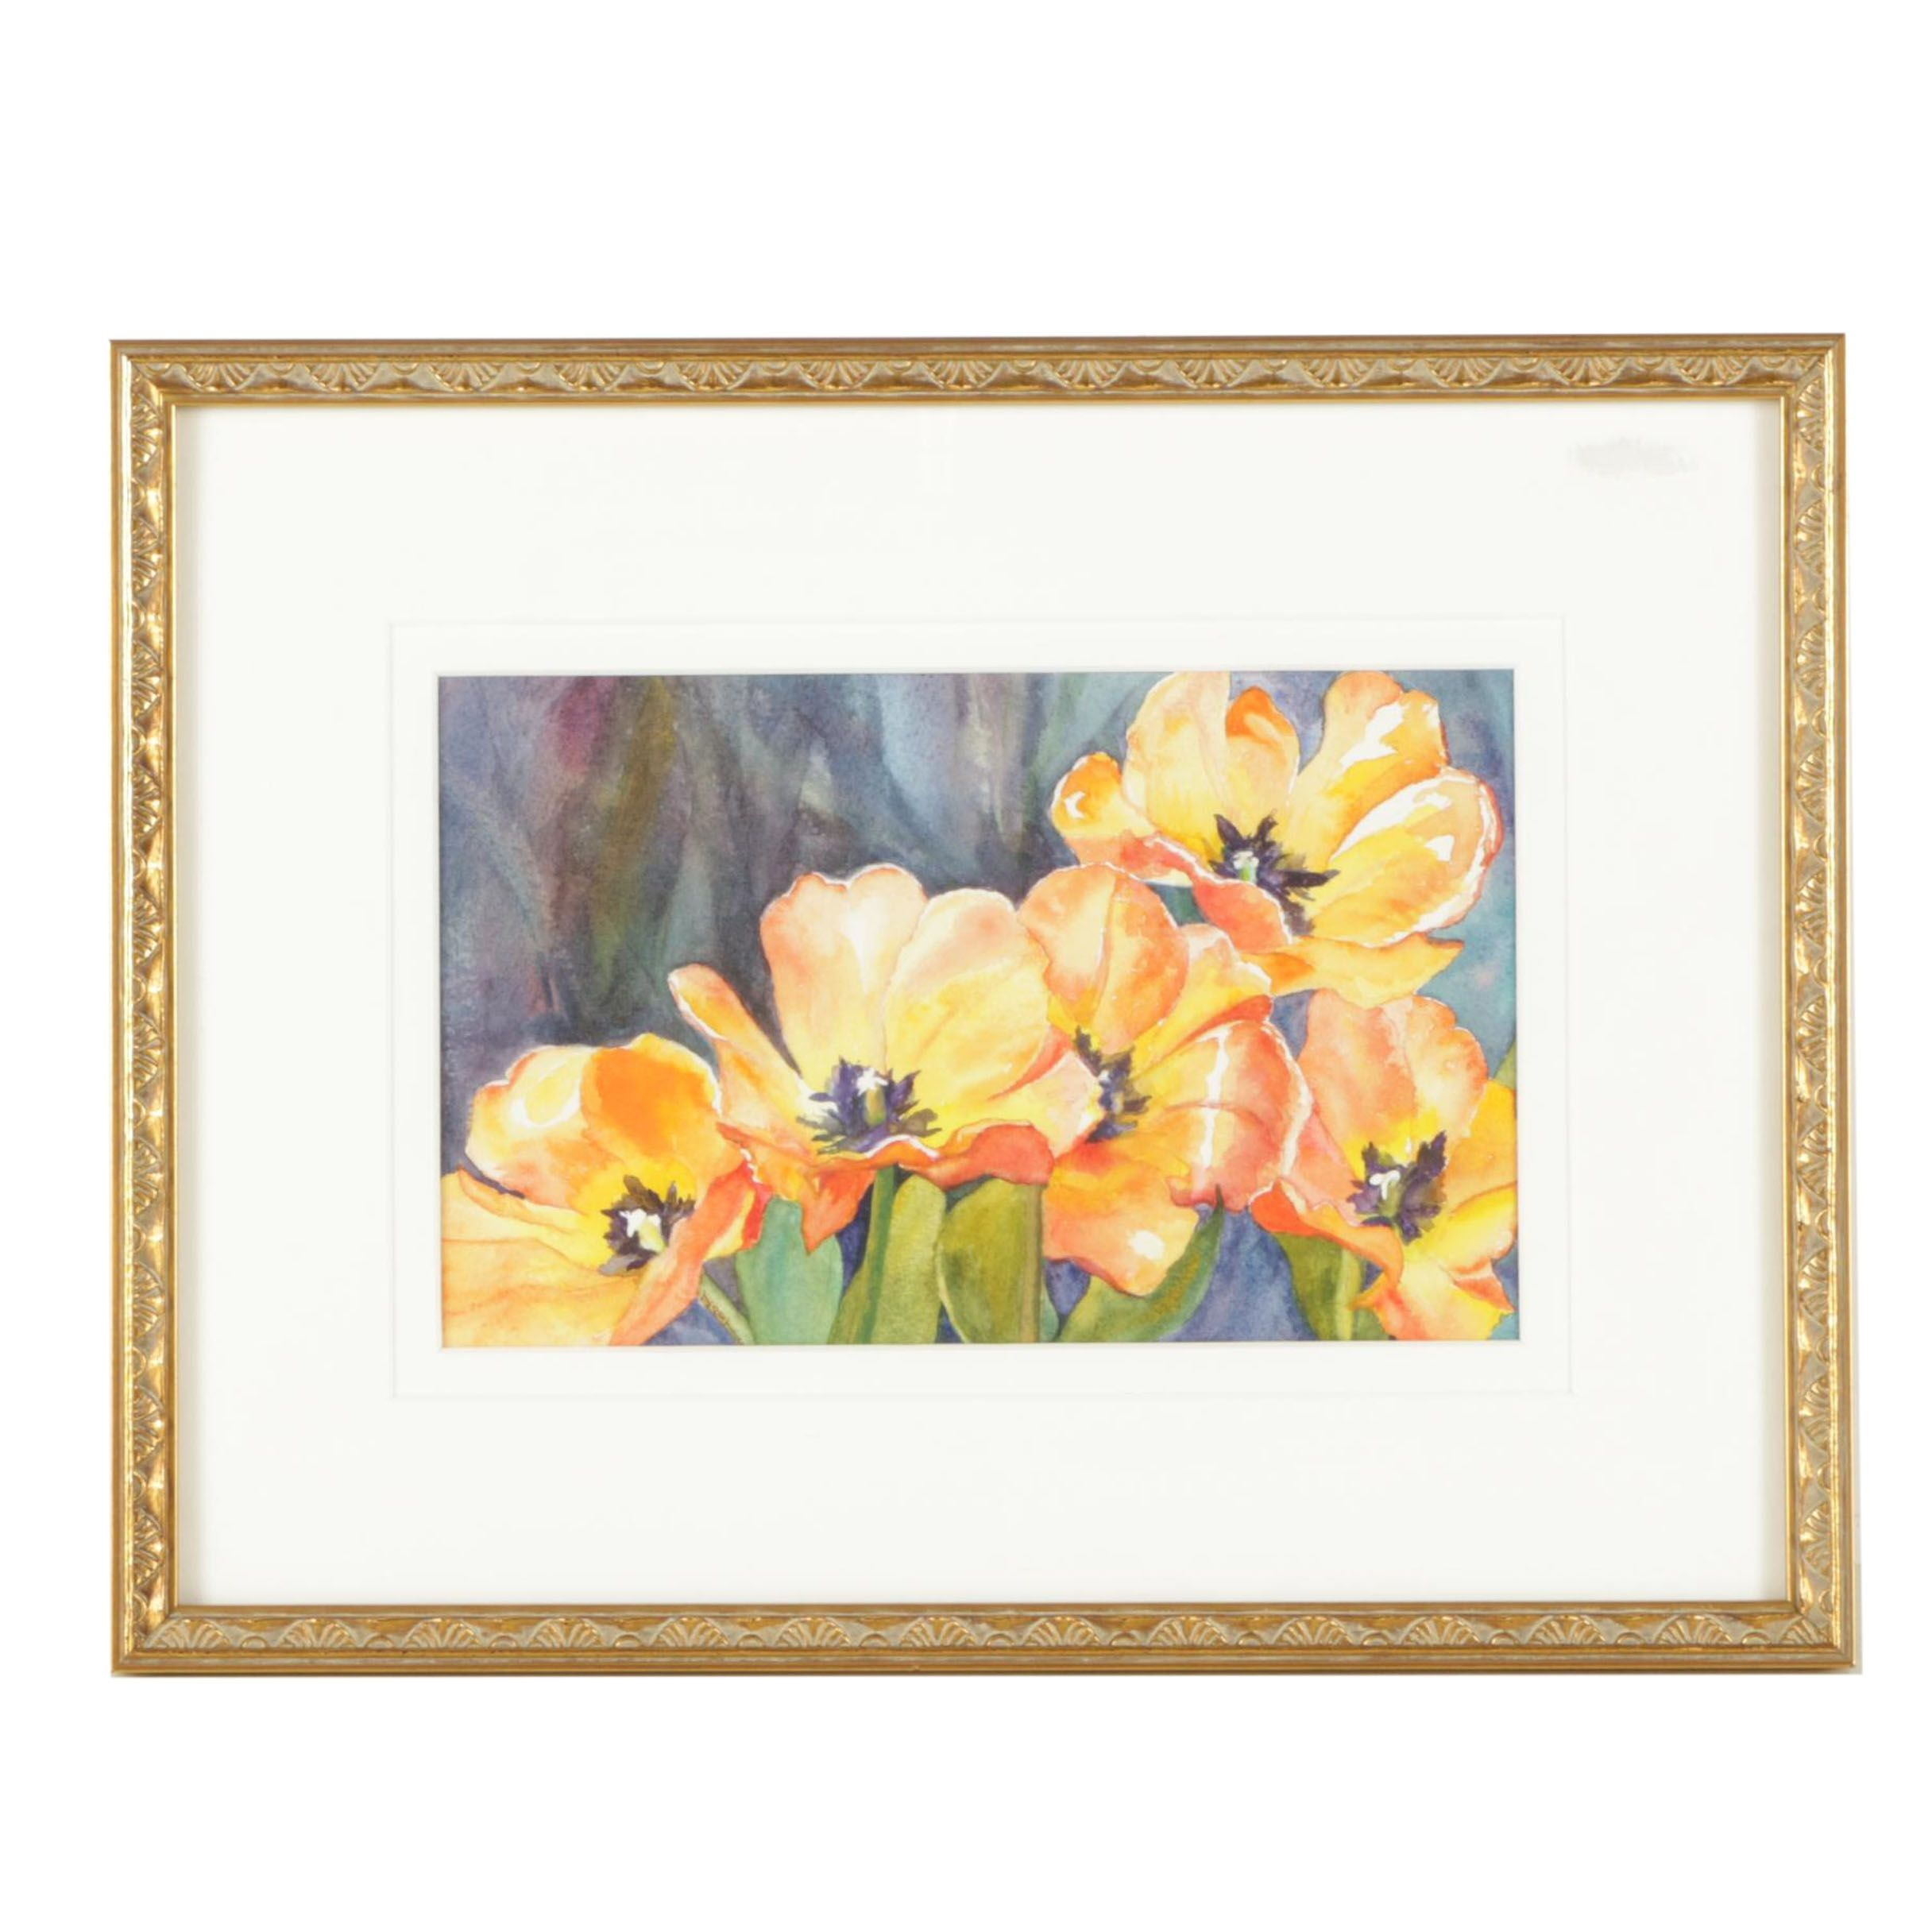 Judy Antico Watercolor Painting of Flowers